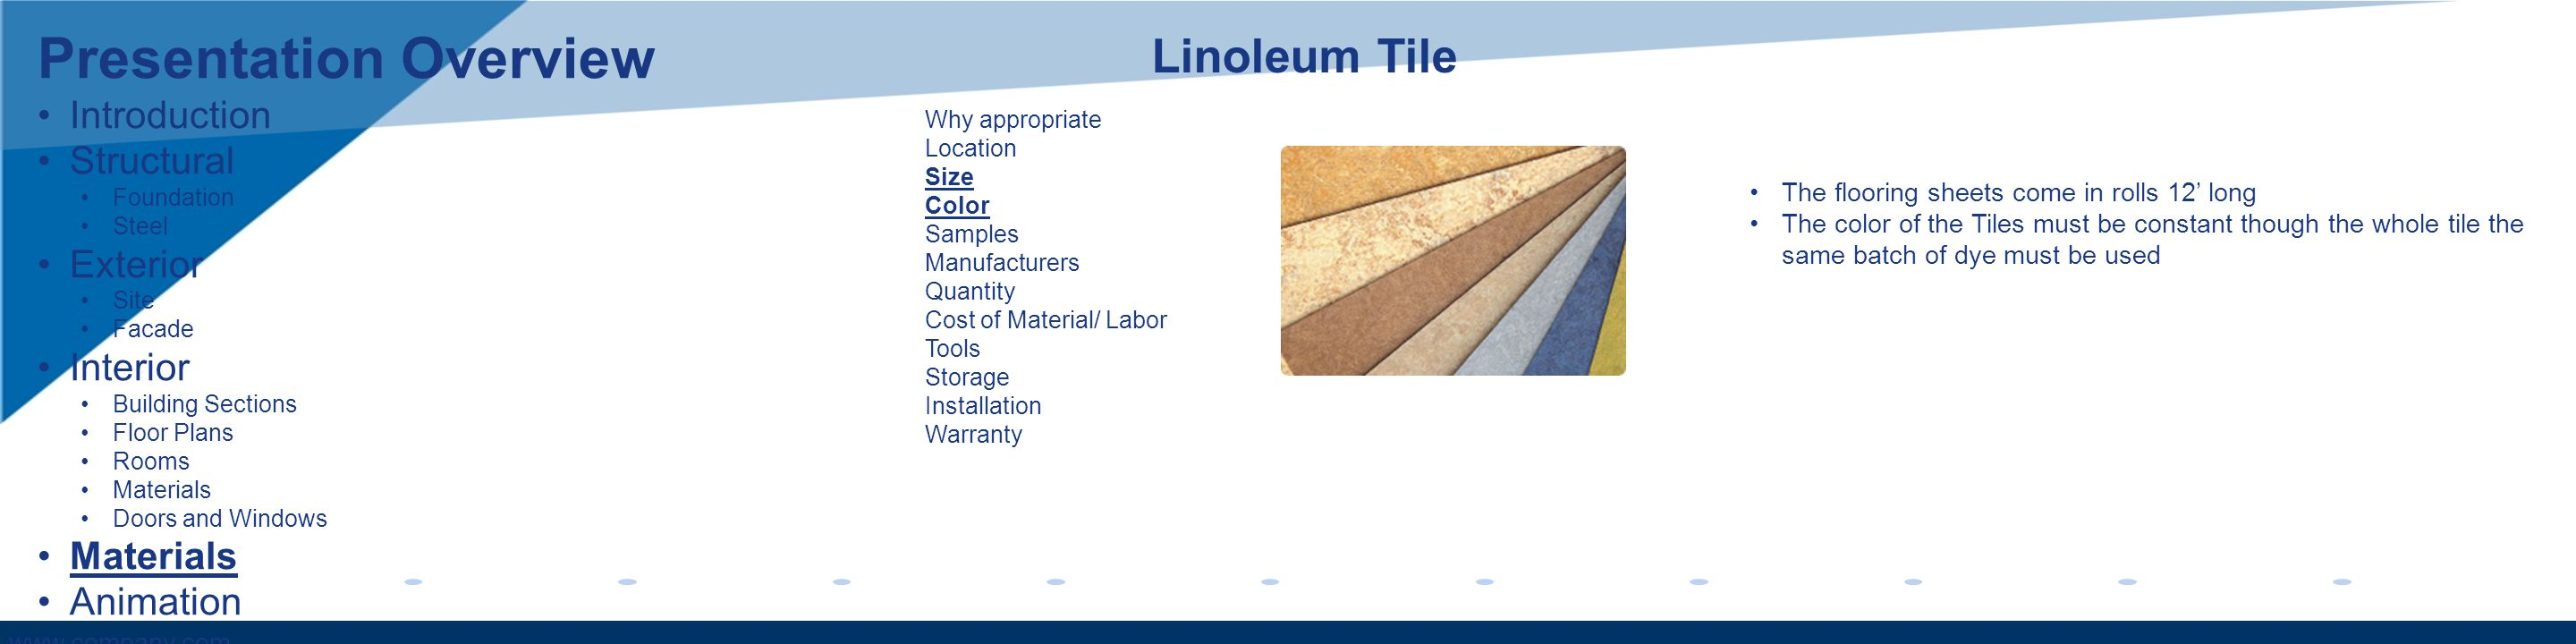 www.company.com Why appropriate Location Size Color Samples Manufacturers Quantity Cost of Material/ Labor Tools Storage Installation Warranty Linoleum Tile The flooring sheets come in rolls 12 long The color of the Tiles must be constant though the whole tile the same batch of dye must be used Presentation Overview Introduction Structural Foundation Steel Exterior Site Facade Interior Building Sections Floor Plans Rooms Materials Doors and Windows Materials Animation